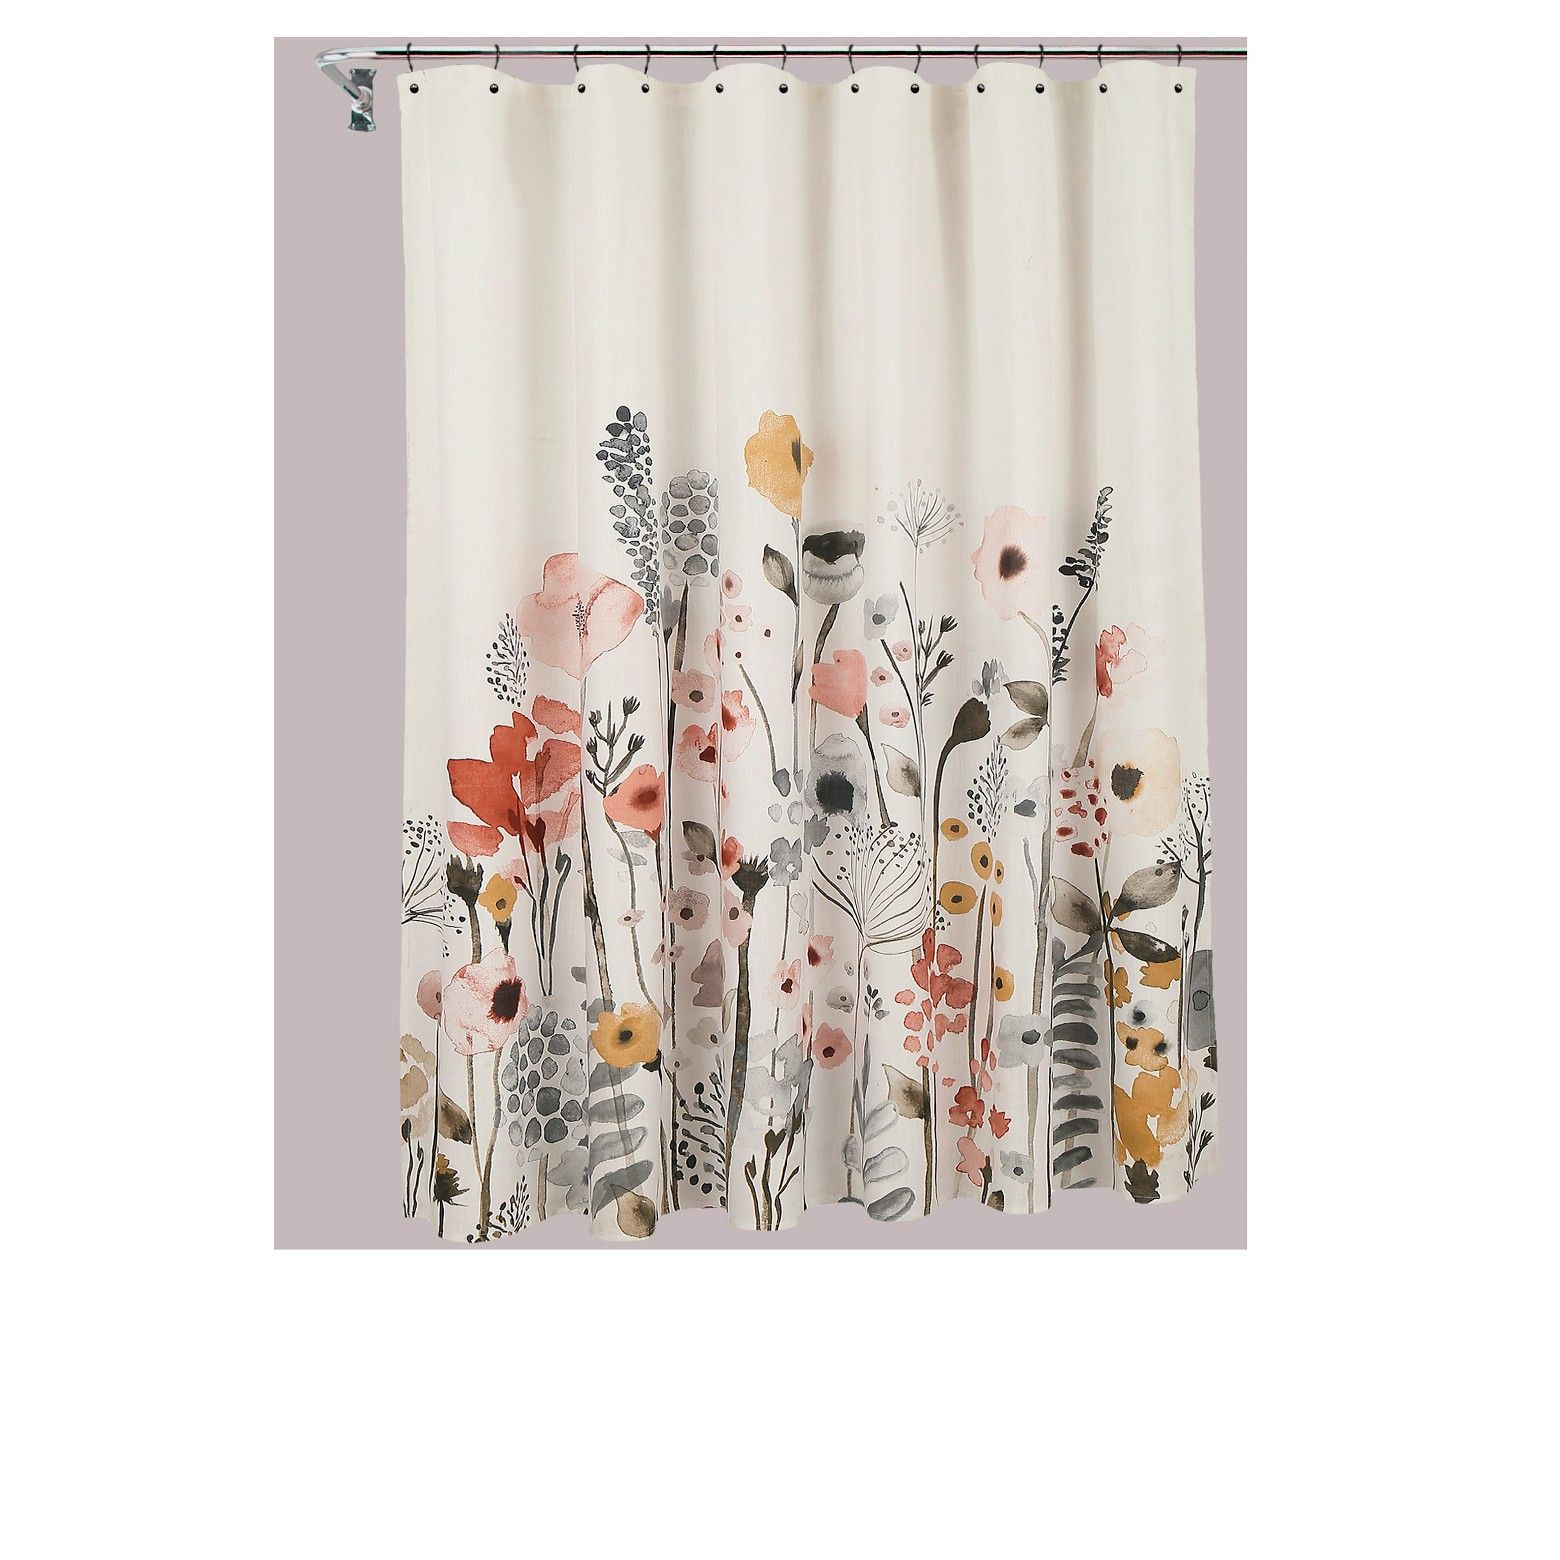 Shower Curtain Floral Wave Threshold Floral Shower Curtains Floral Bathroom Flower Shower Curtain